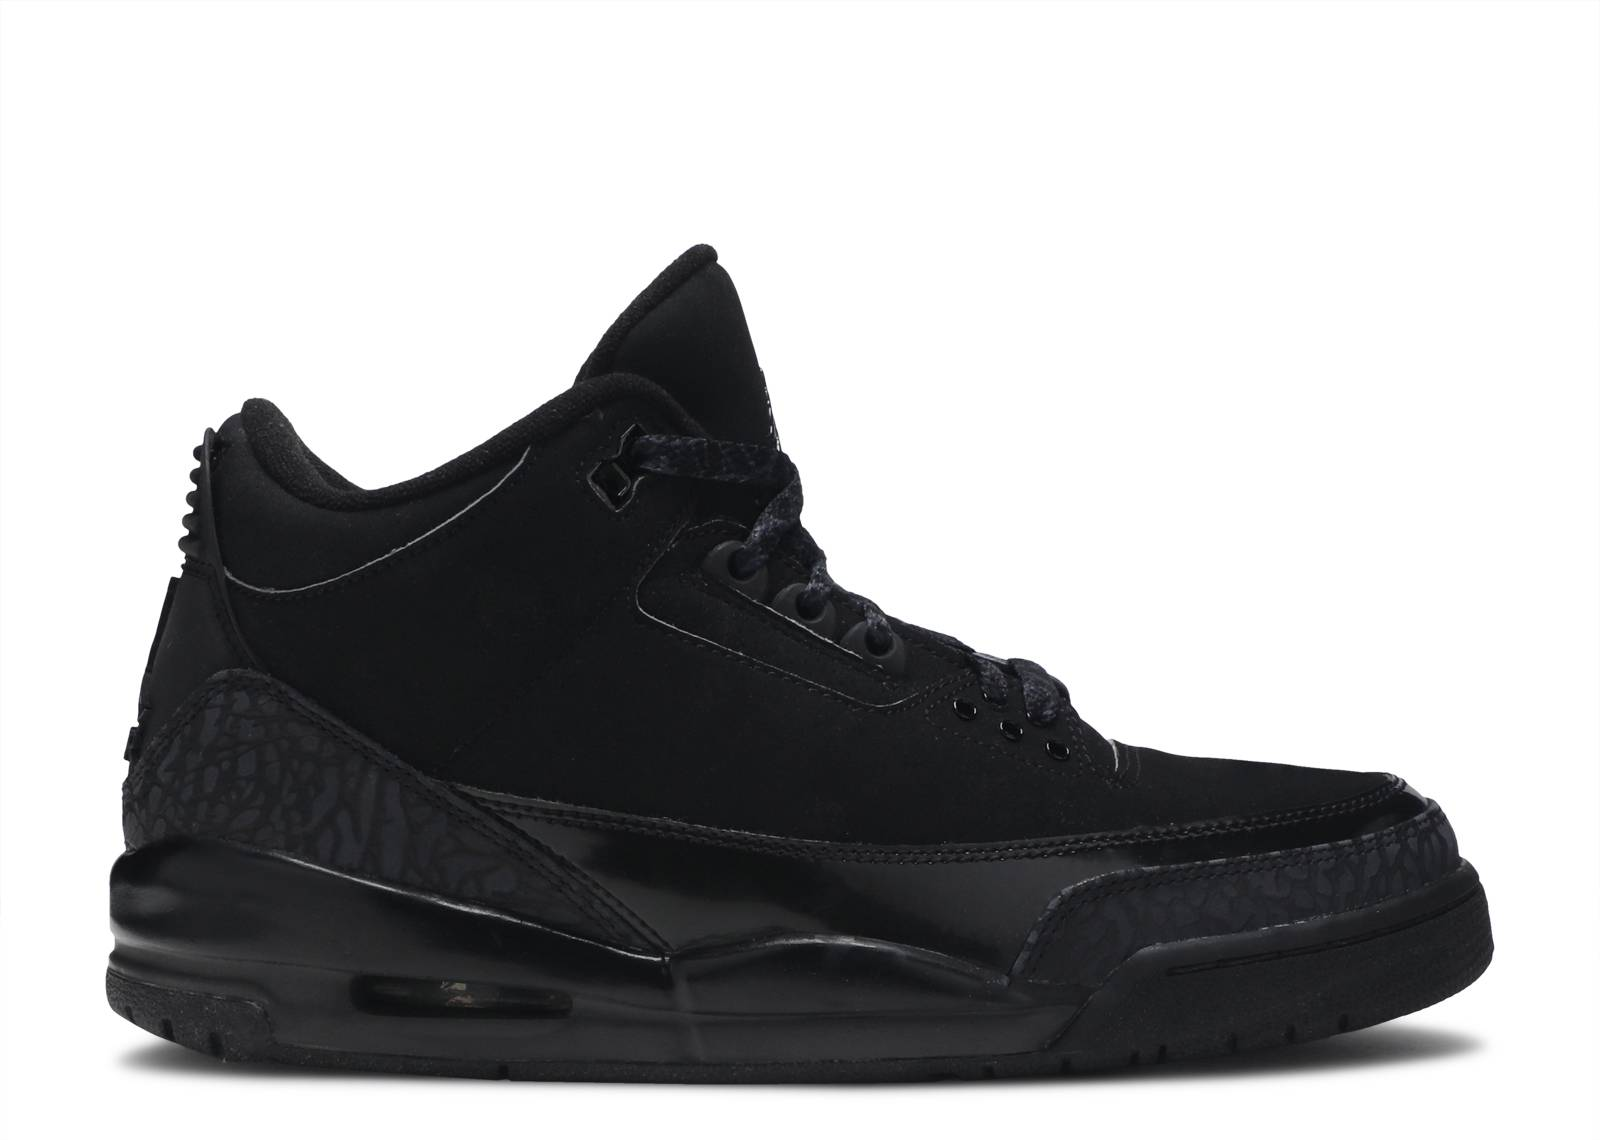 nike air jordan 3 retro black cat